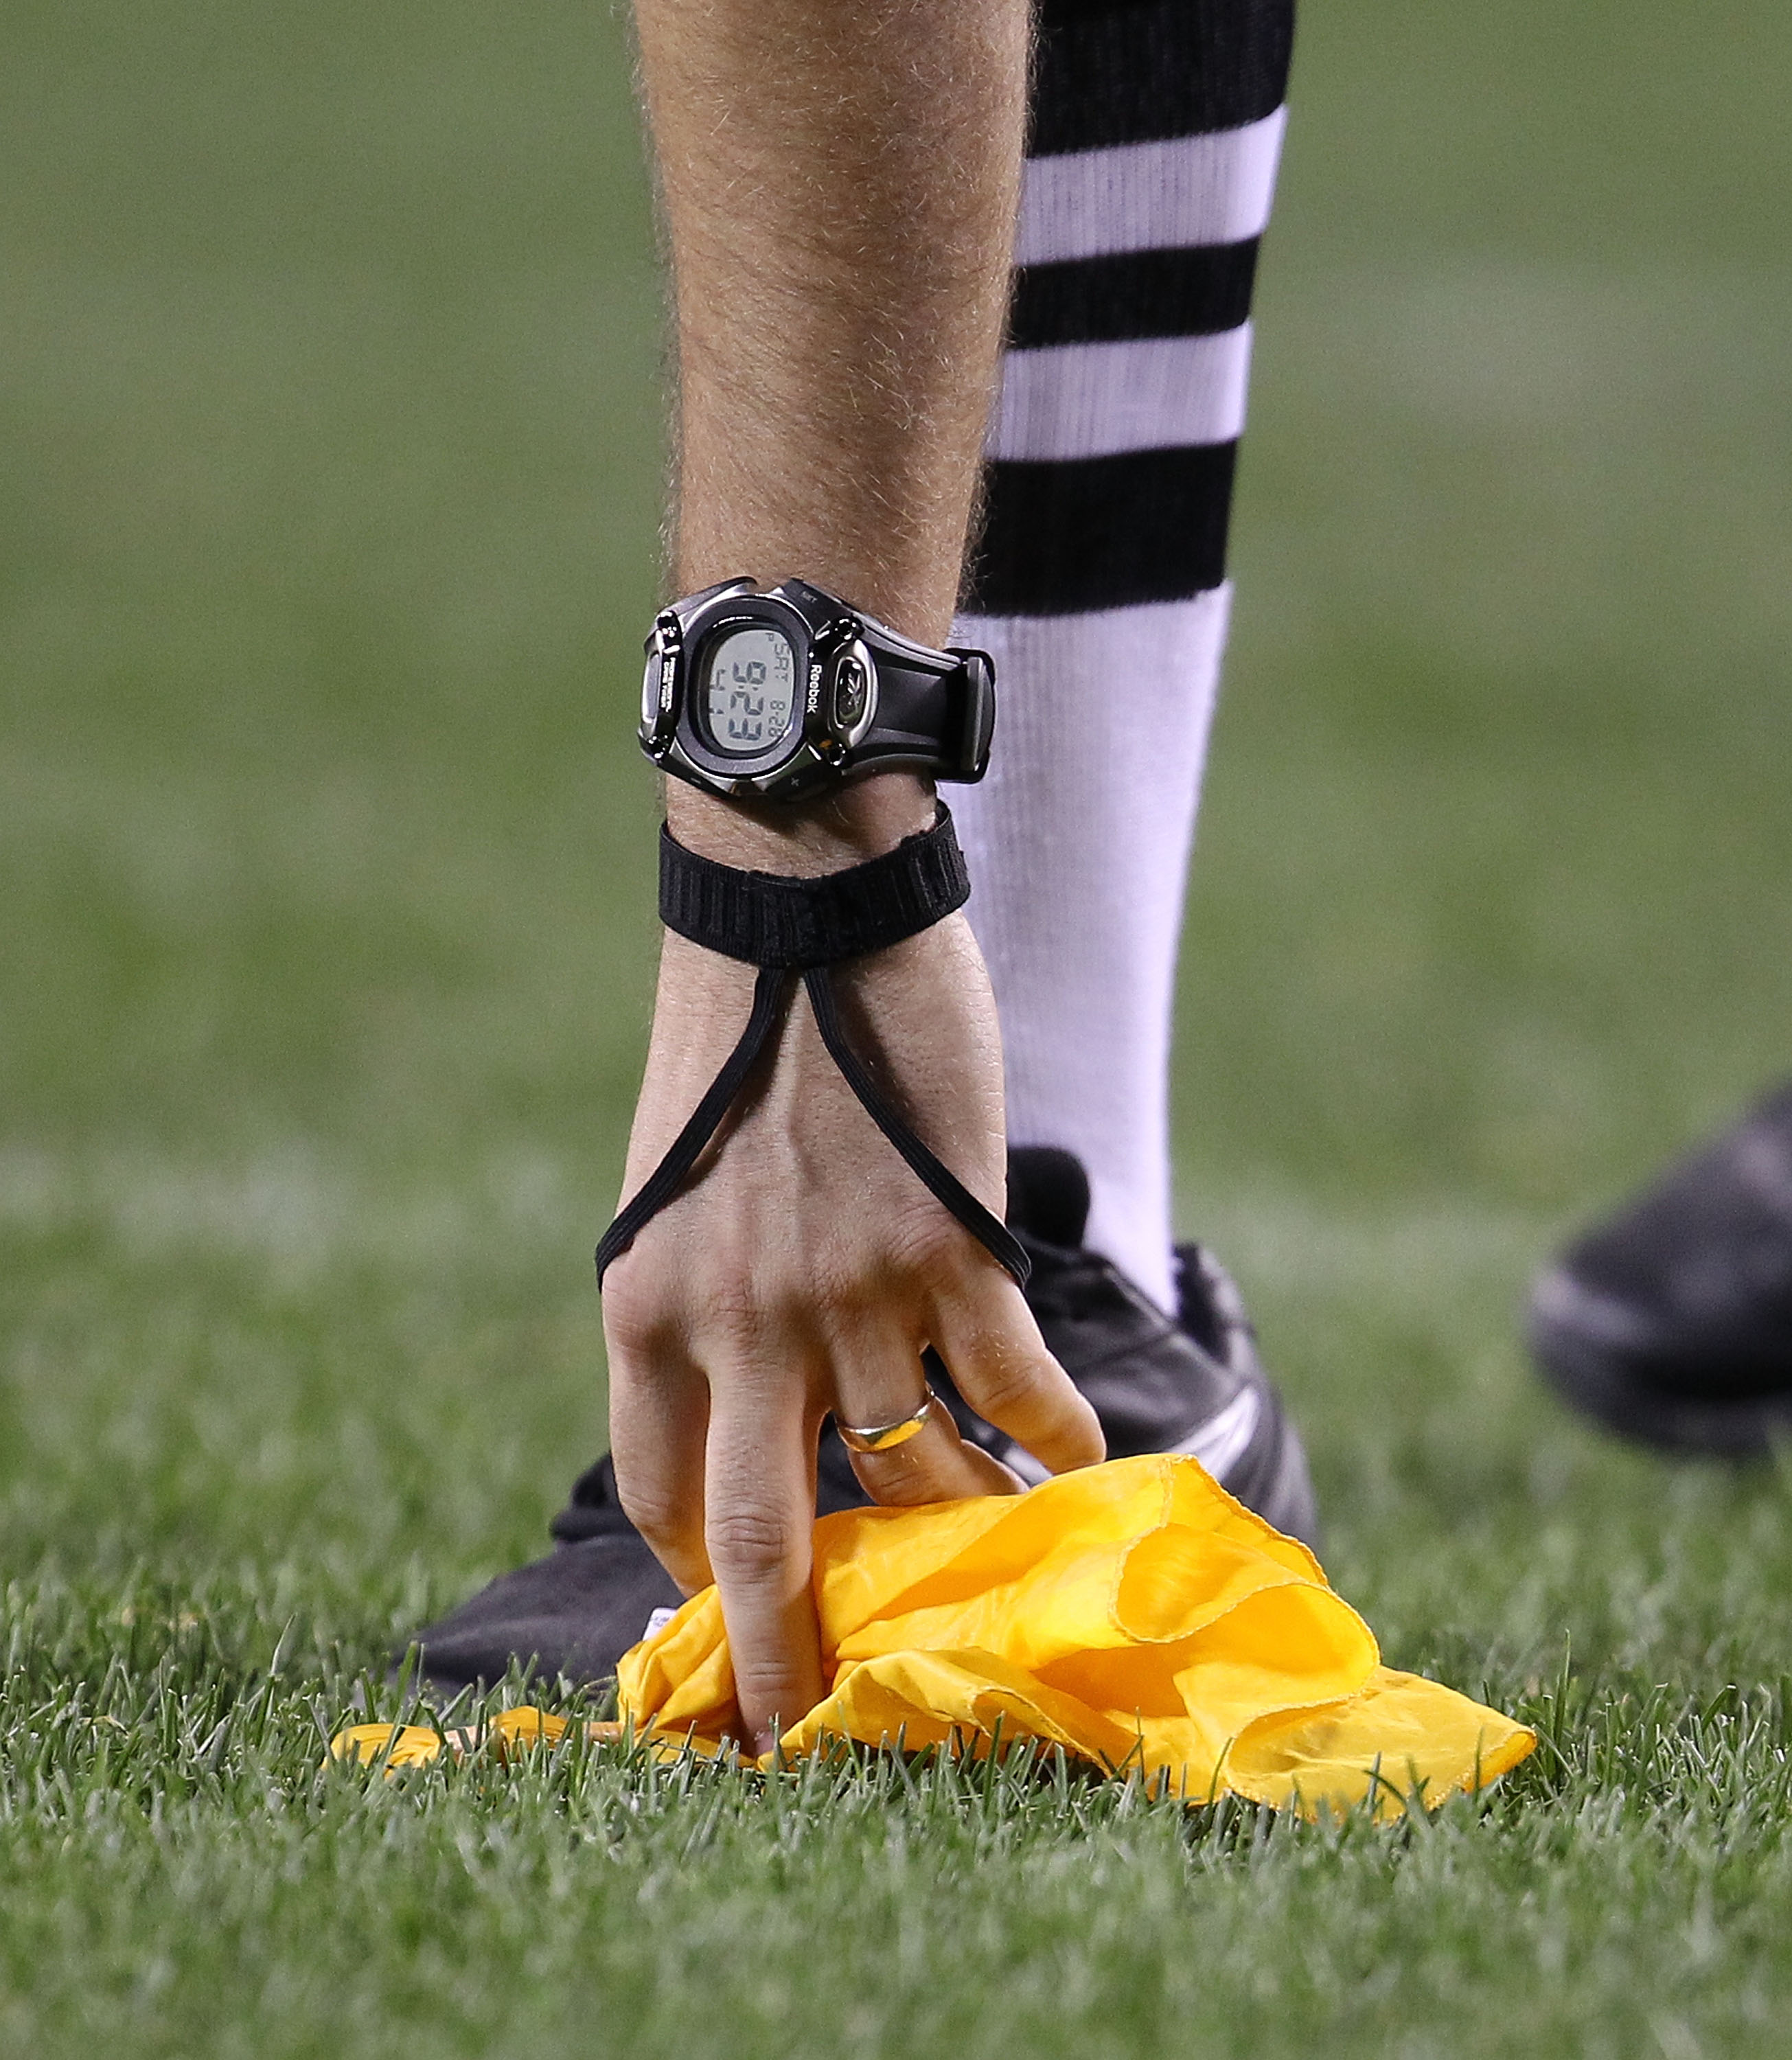 CHICAGO - AUGUST 28: A referee picks up a penalty flag during a preseason game between the Chicago Bears and the Arizona Cardinals during a preseason game at Soldier Field on August 28, 2010 in Chicago, Illinois. The Cardinals defeated the Bears 14-9. (Ph